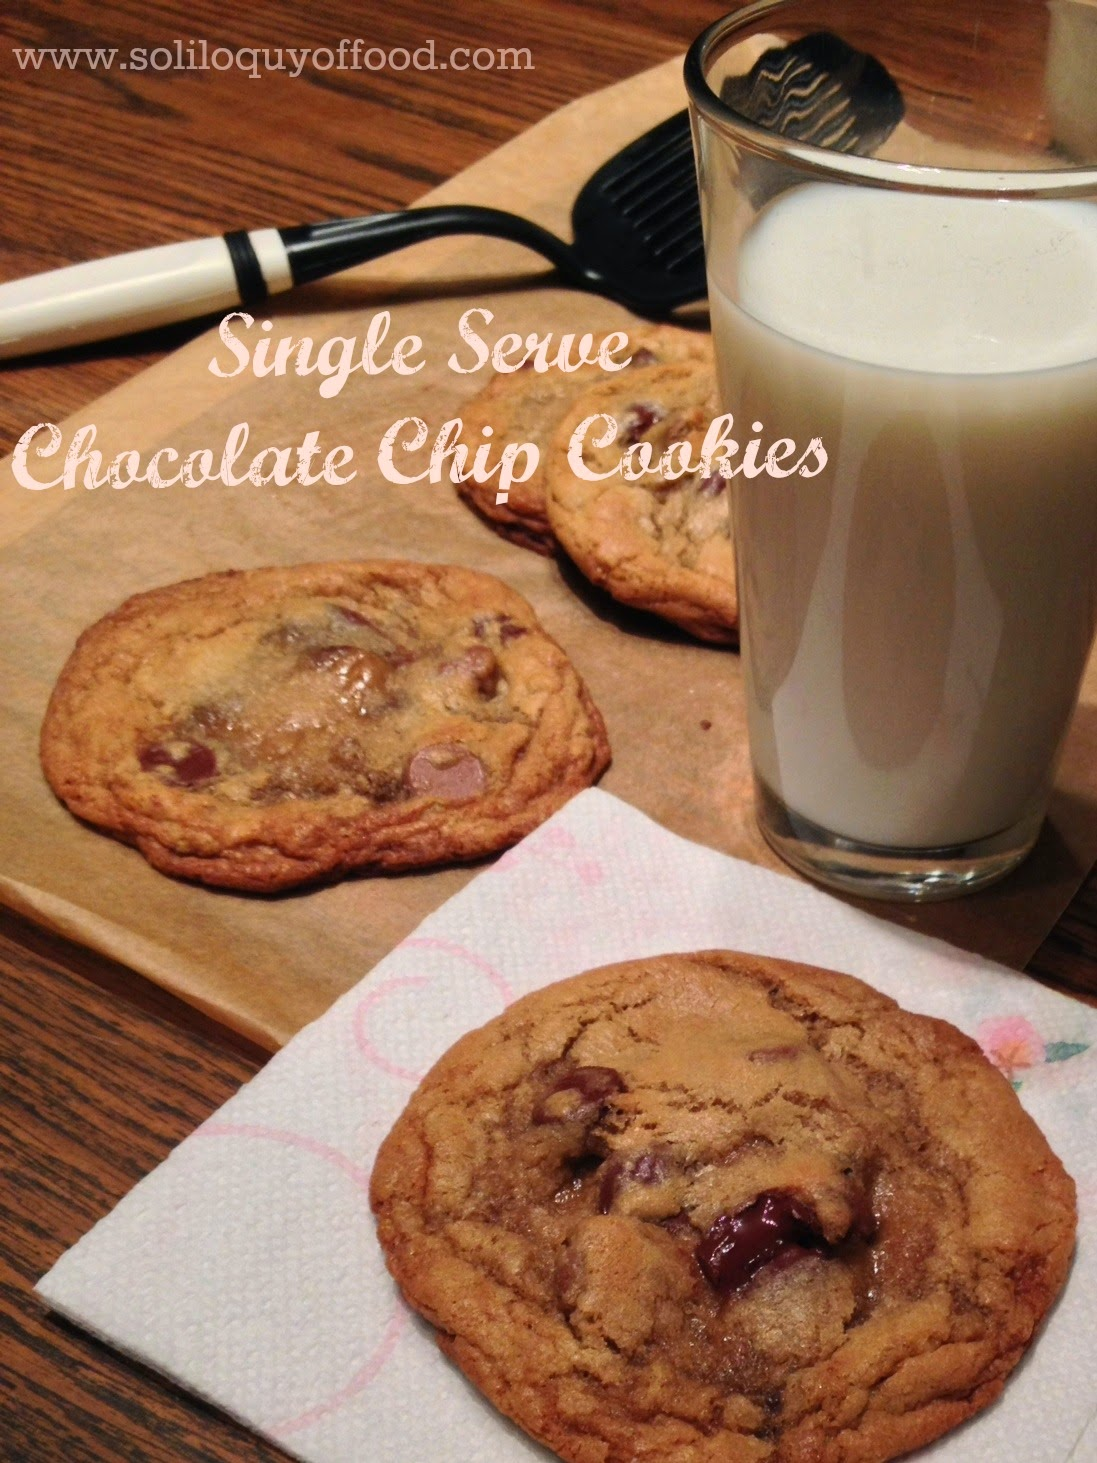 Single Serve Chocolate Chip Cookies - www.soliloquyoffood.com